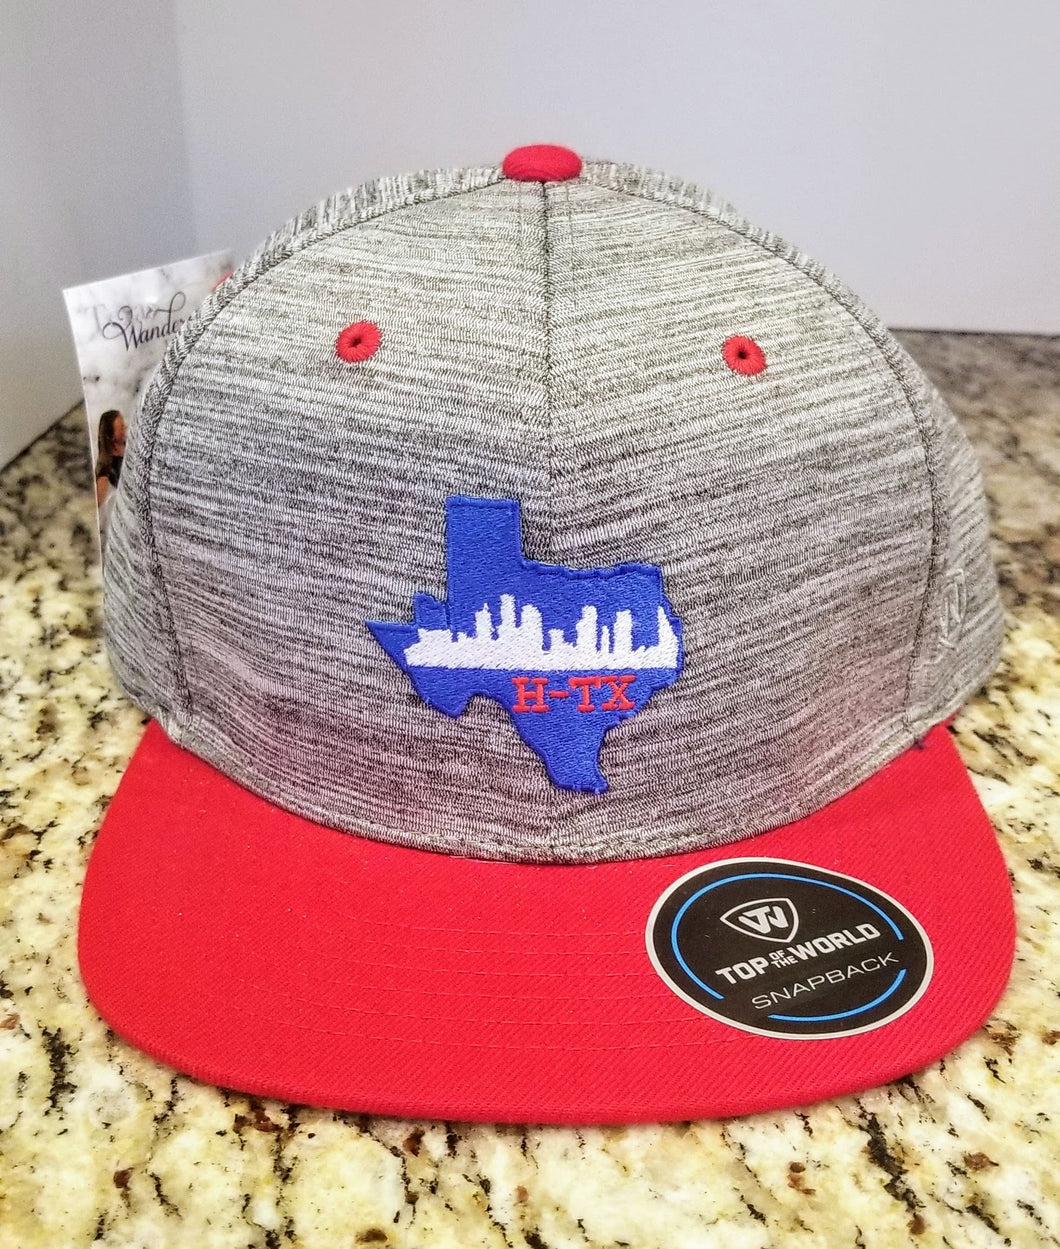 Houston Texas Flatbill Flat Bil Snapback hat